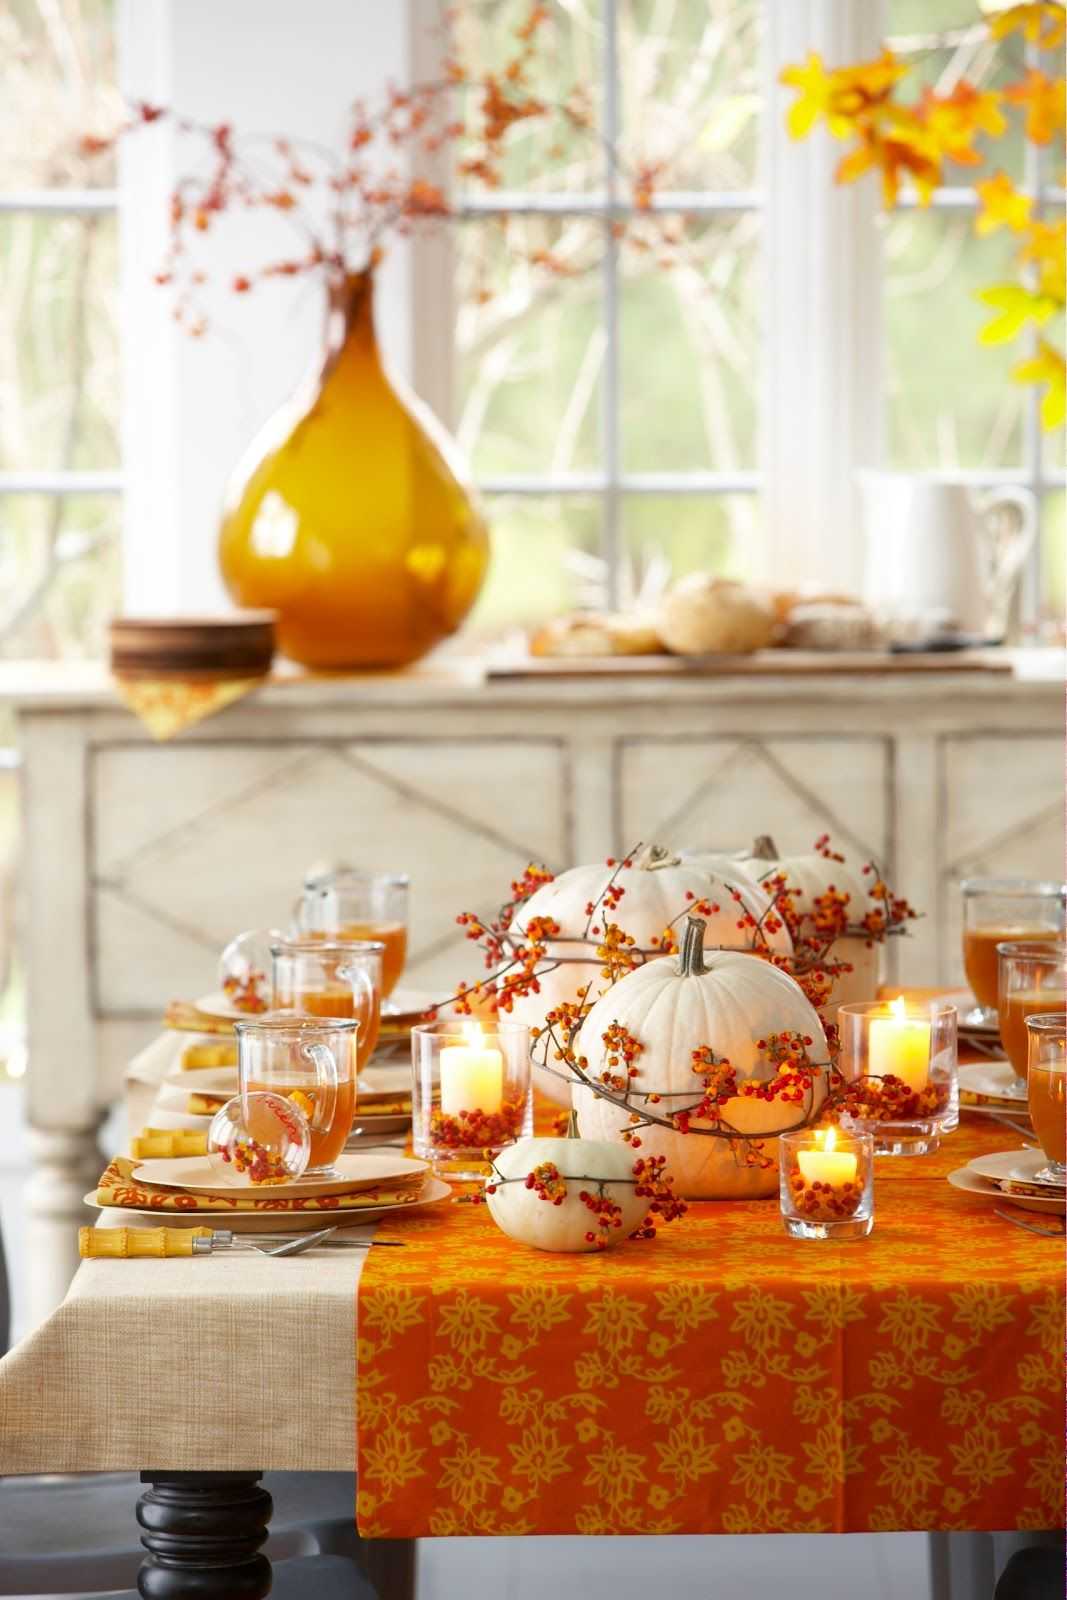 White Pumpkin Table Runner with Twigs and Berries